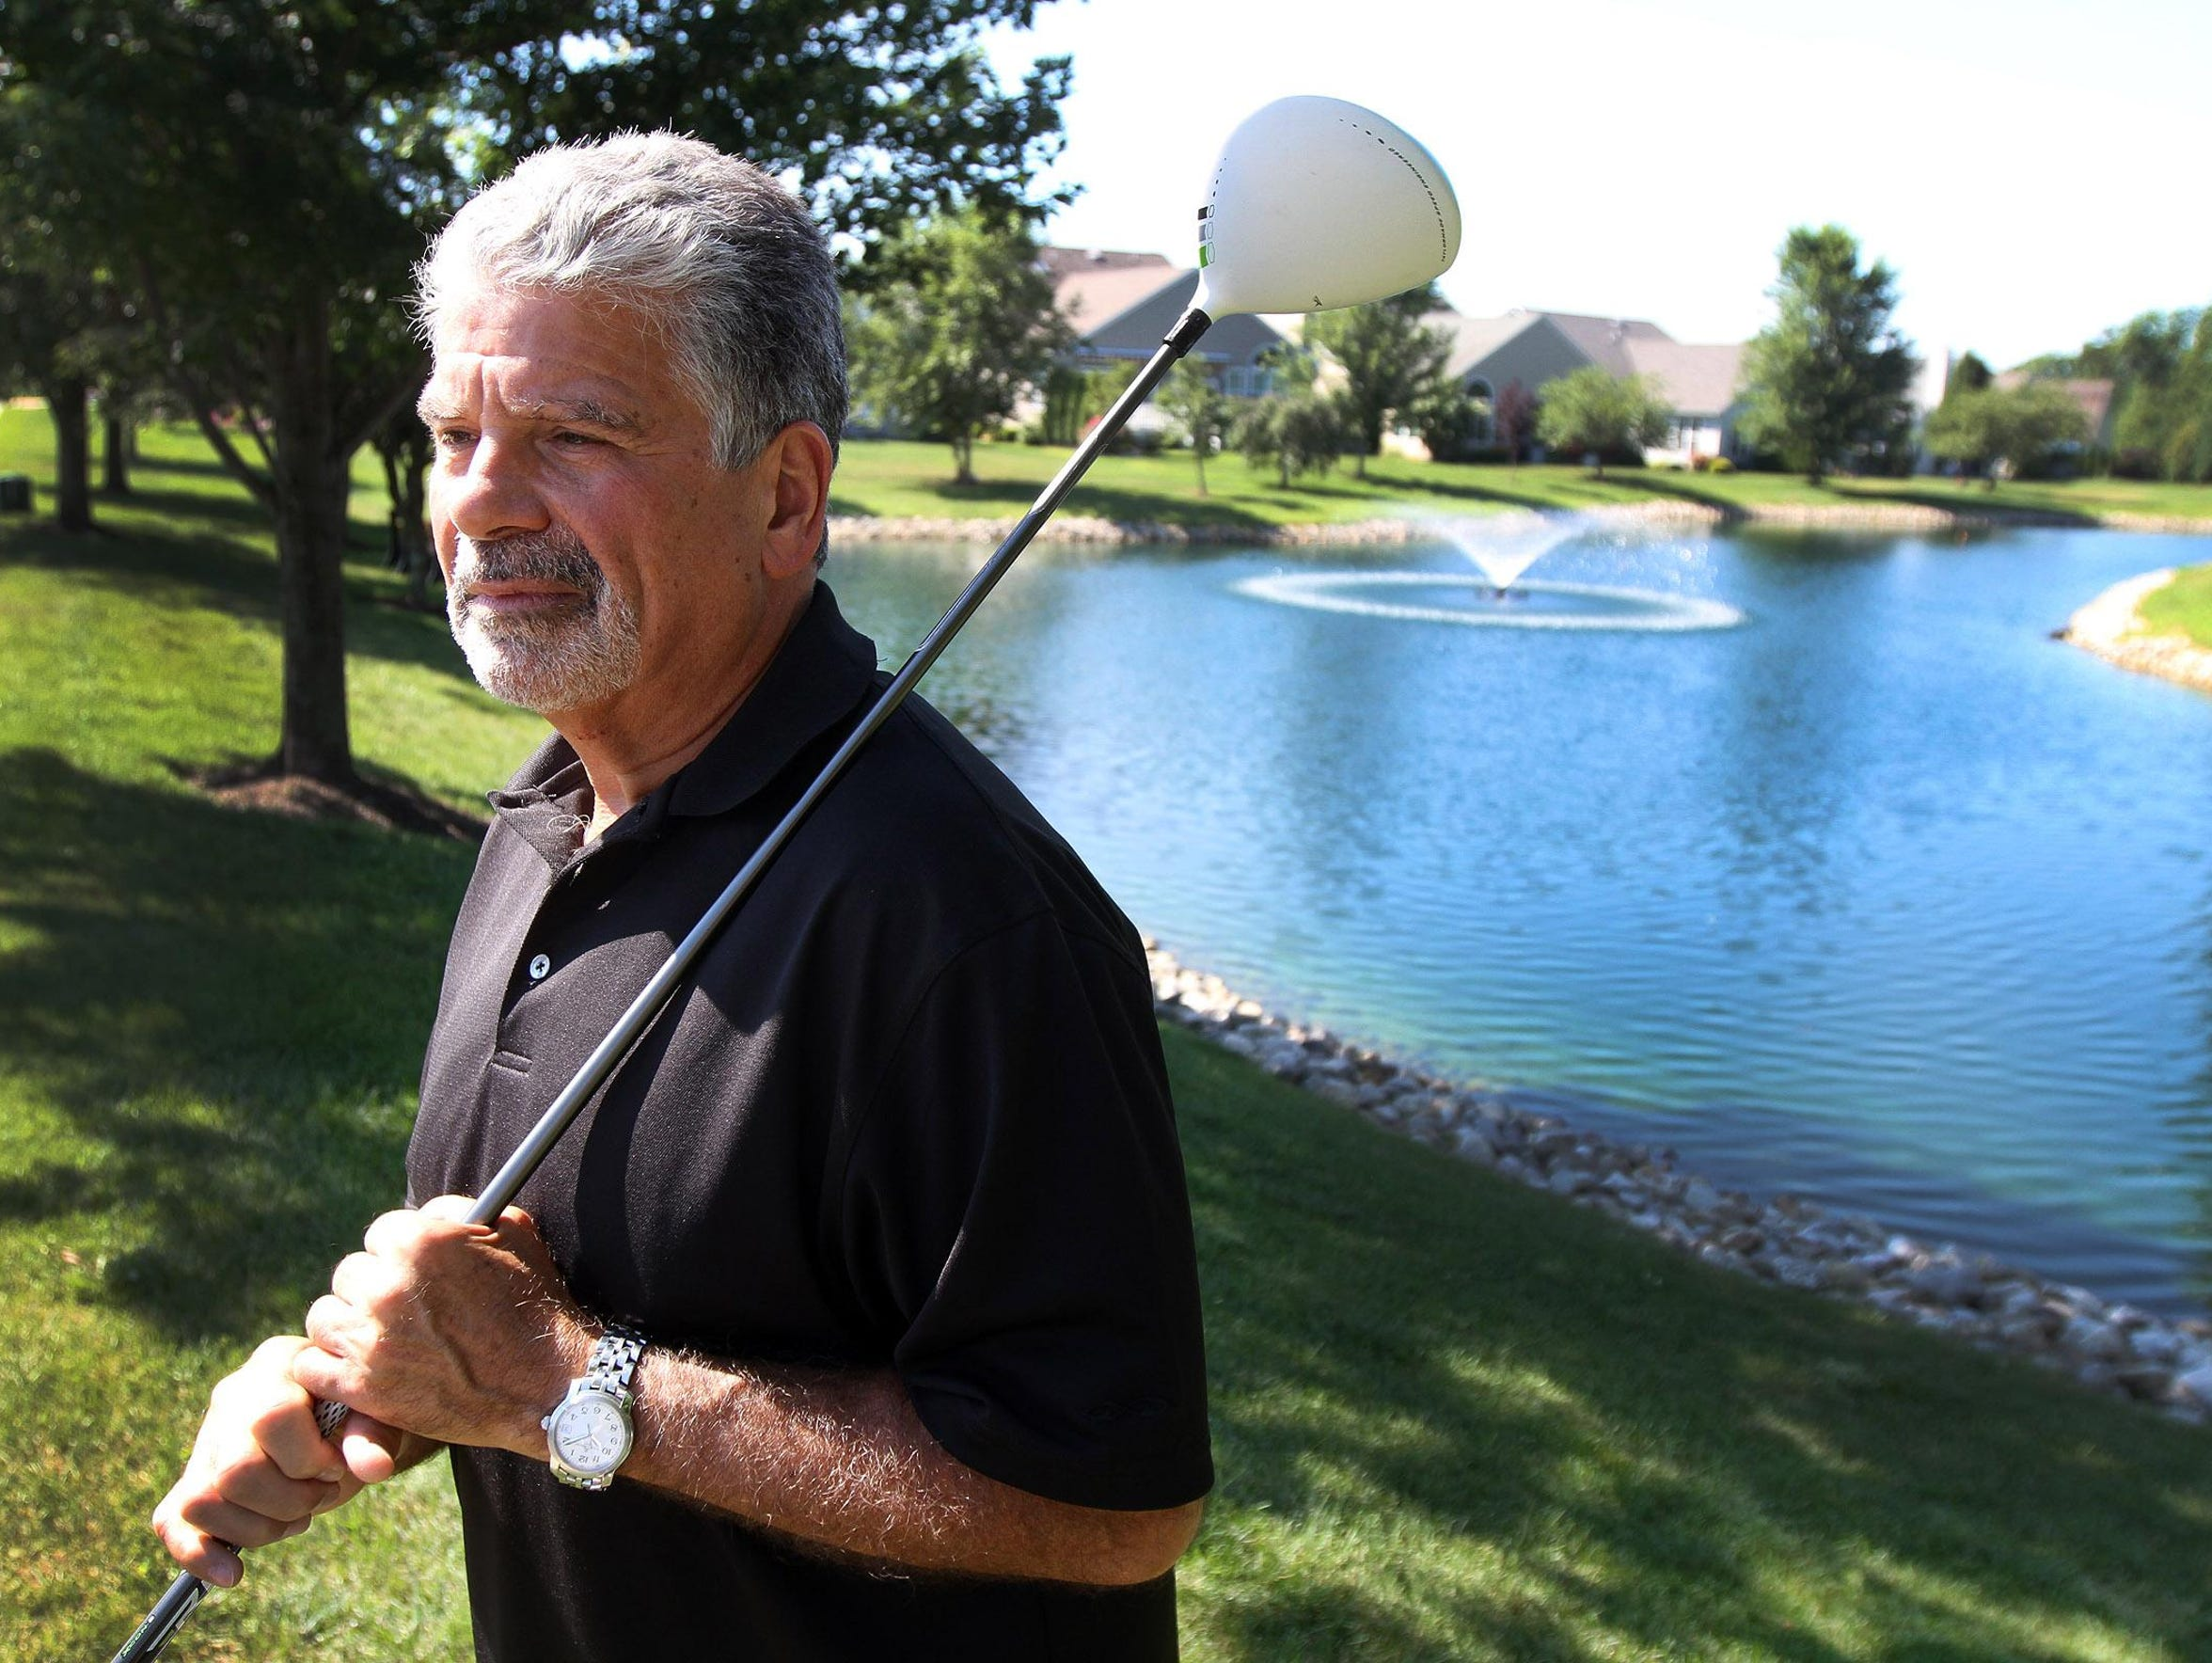 Tom Gatti, a resident of The Enclave, a gated golf